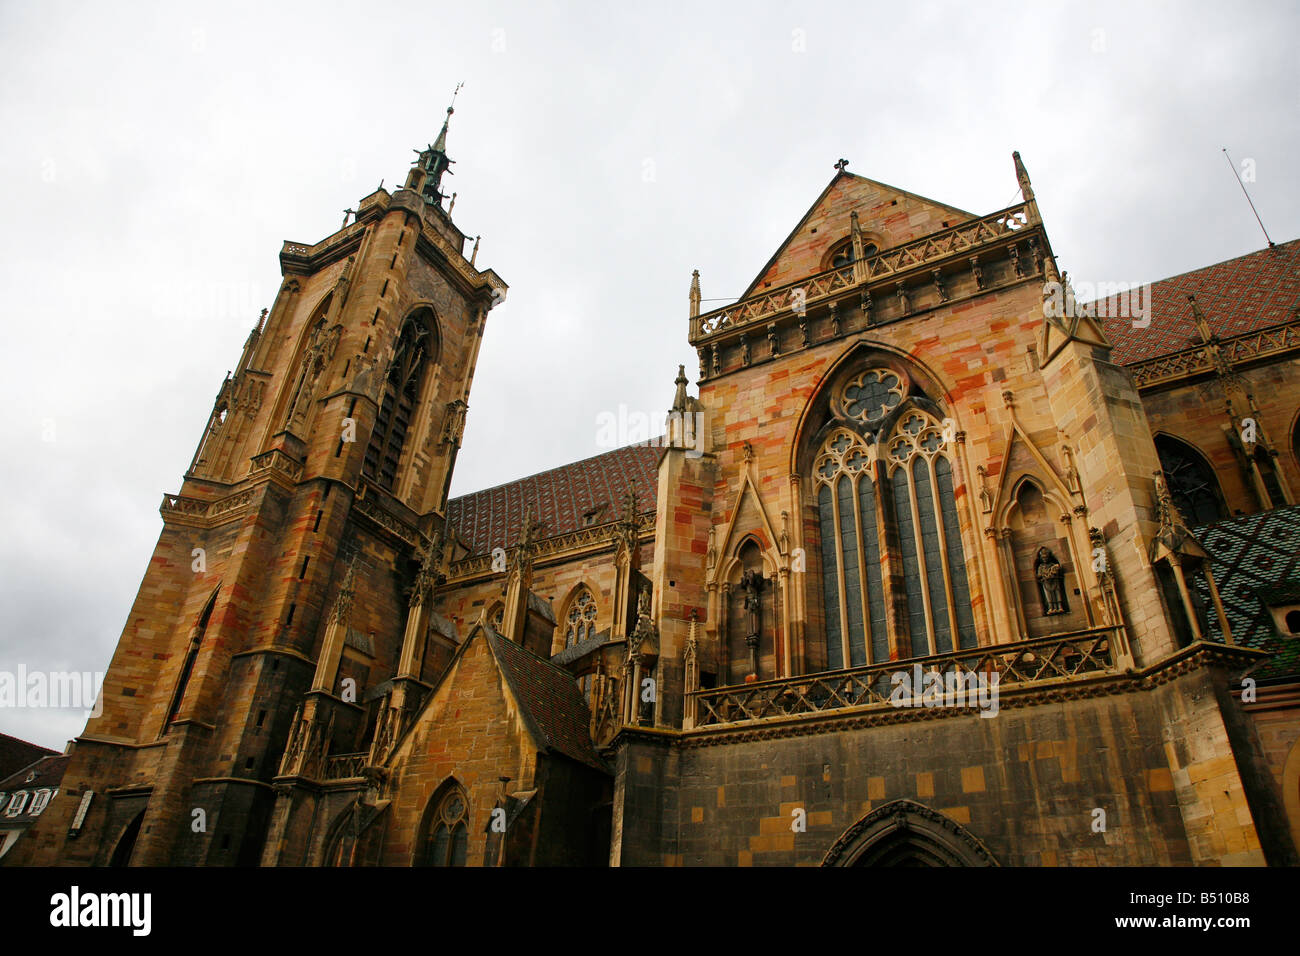 Sep 2008 - Saint Martin Cathedral Colmar Alsace France - Stock Image